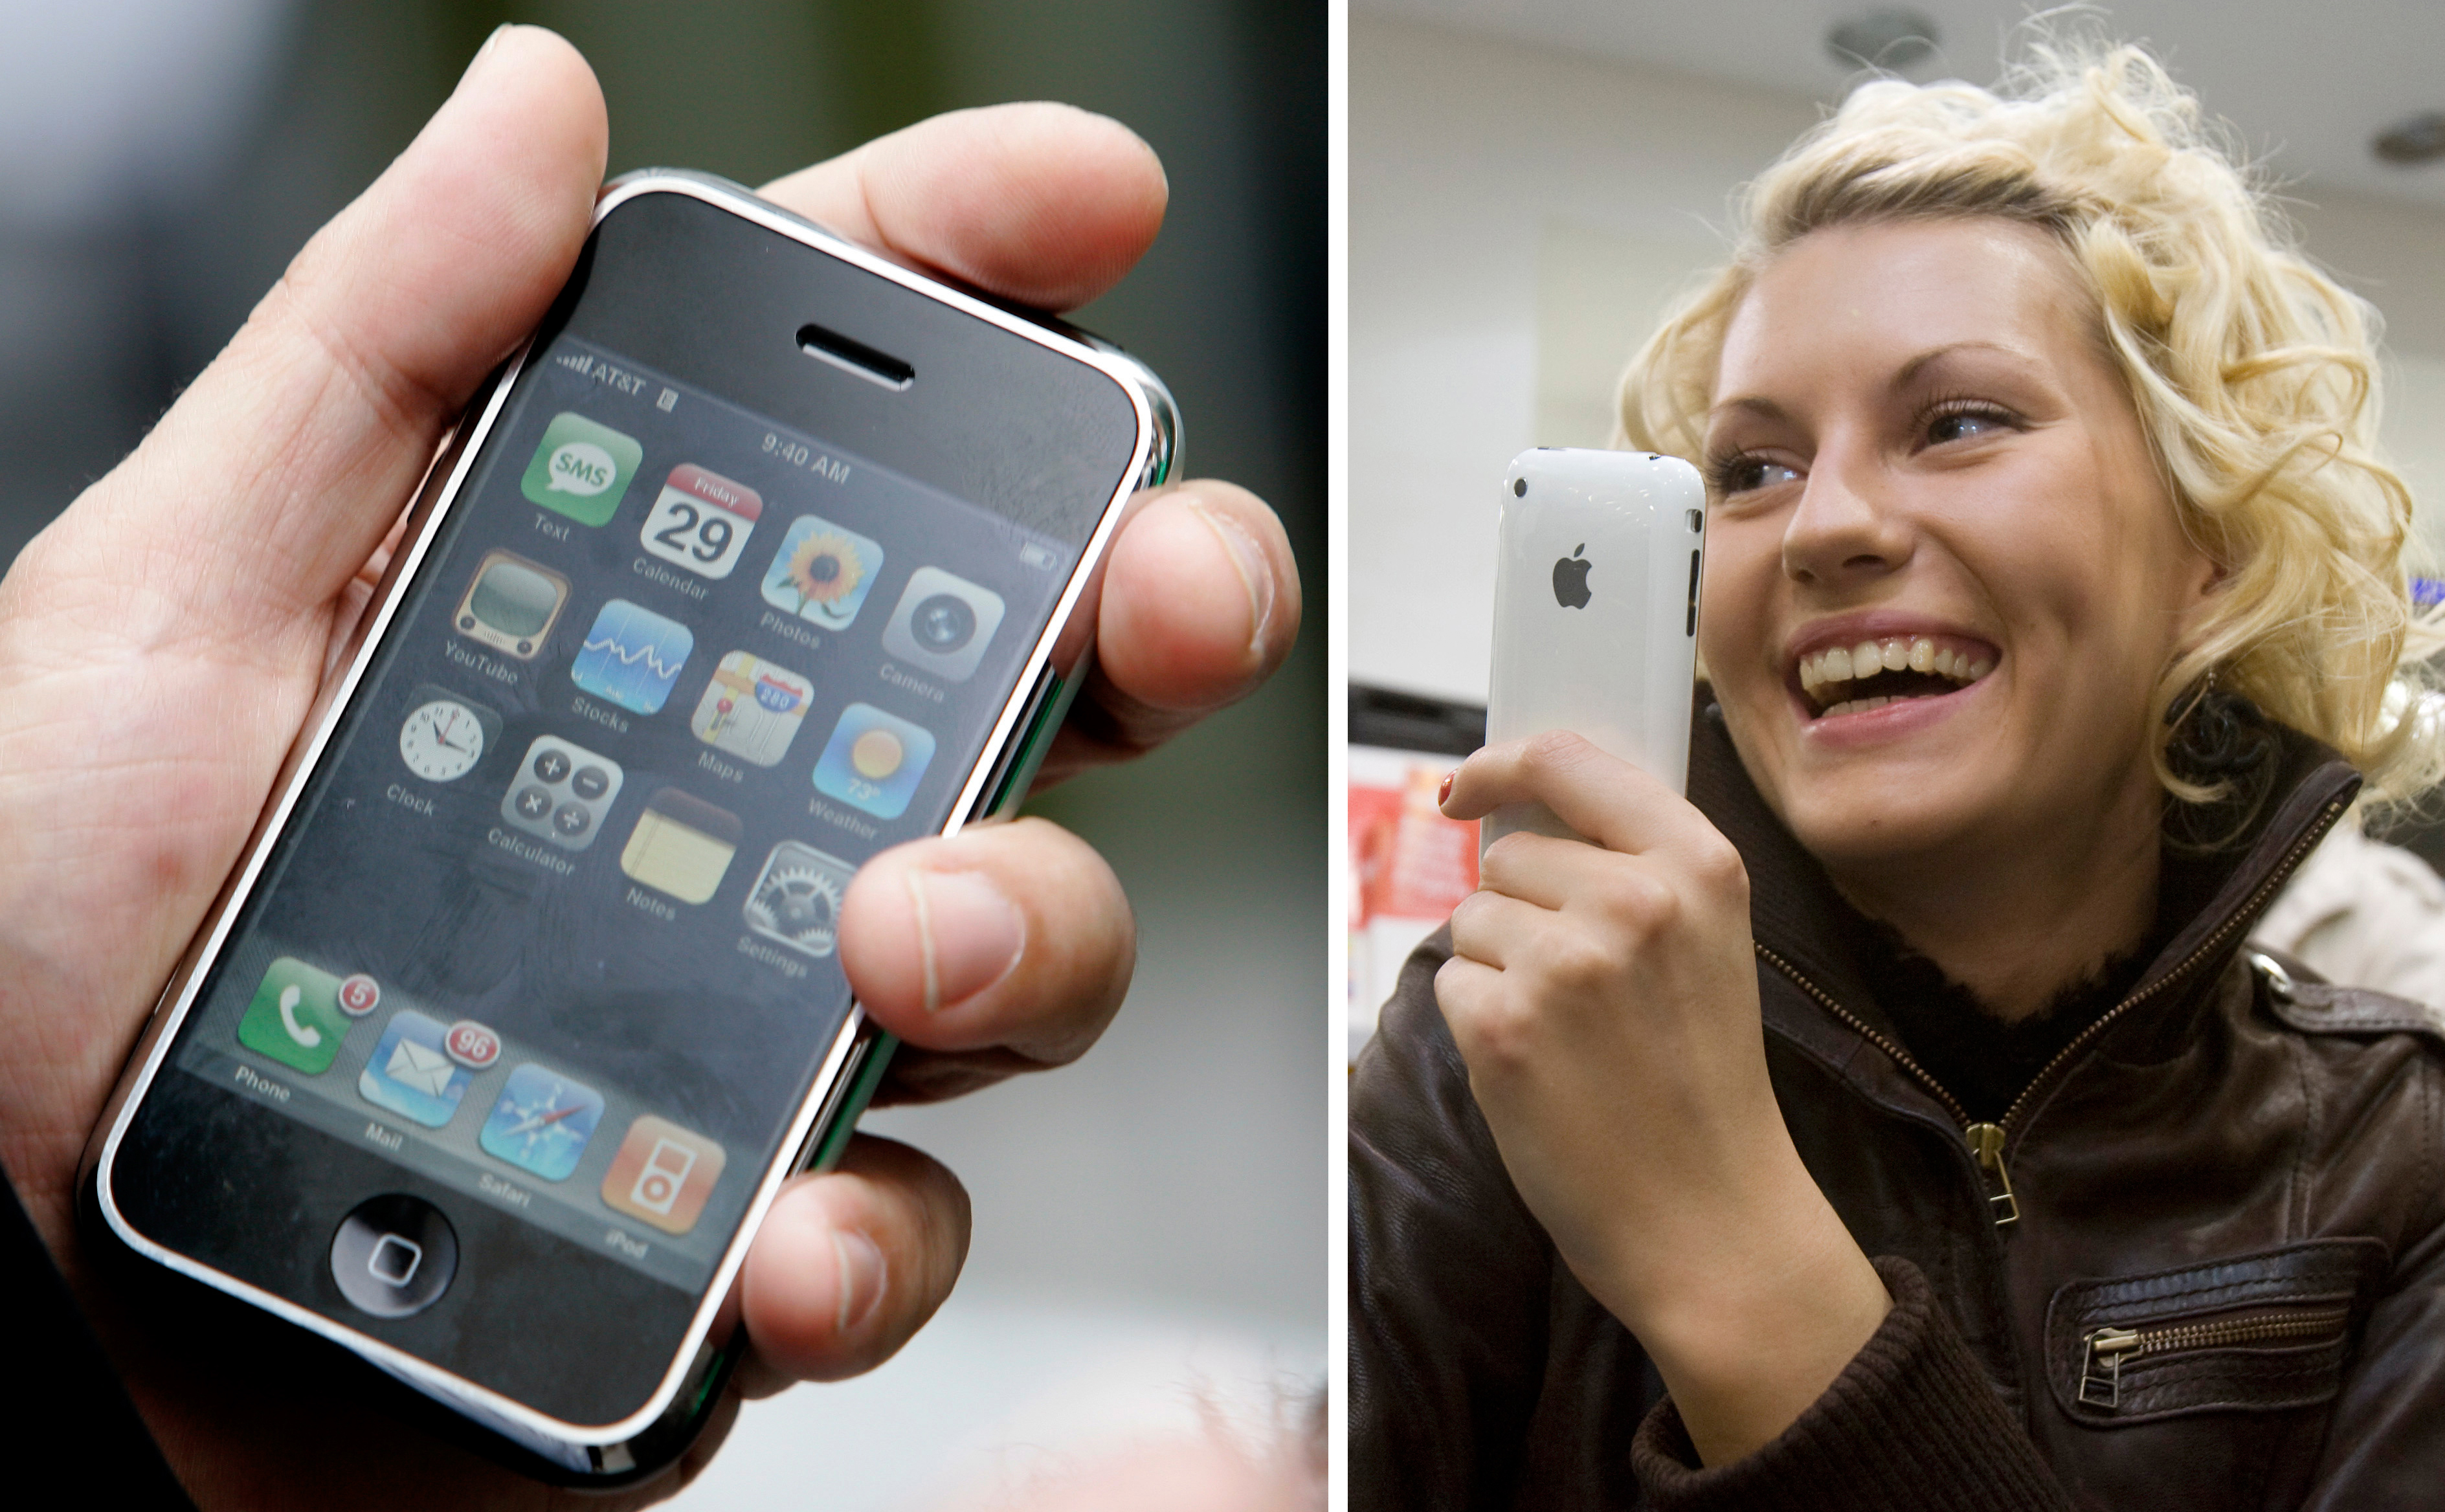 In September, three months after the iPhone's original launch, Apple cut the 8GB model's price to $399 and discontinued the 4GB model (left). The iPhone 3G (right), released on July 11, 2008, cost $199 and featured faster internet, GPS, and the ability to run third-party applications.